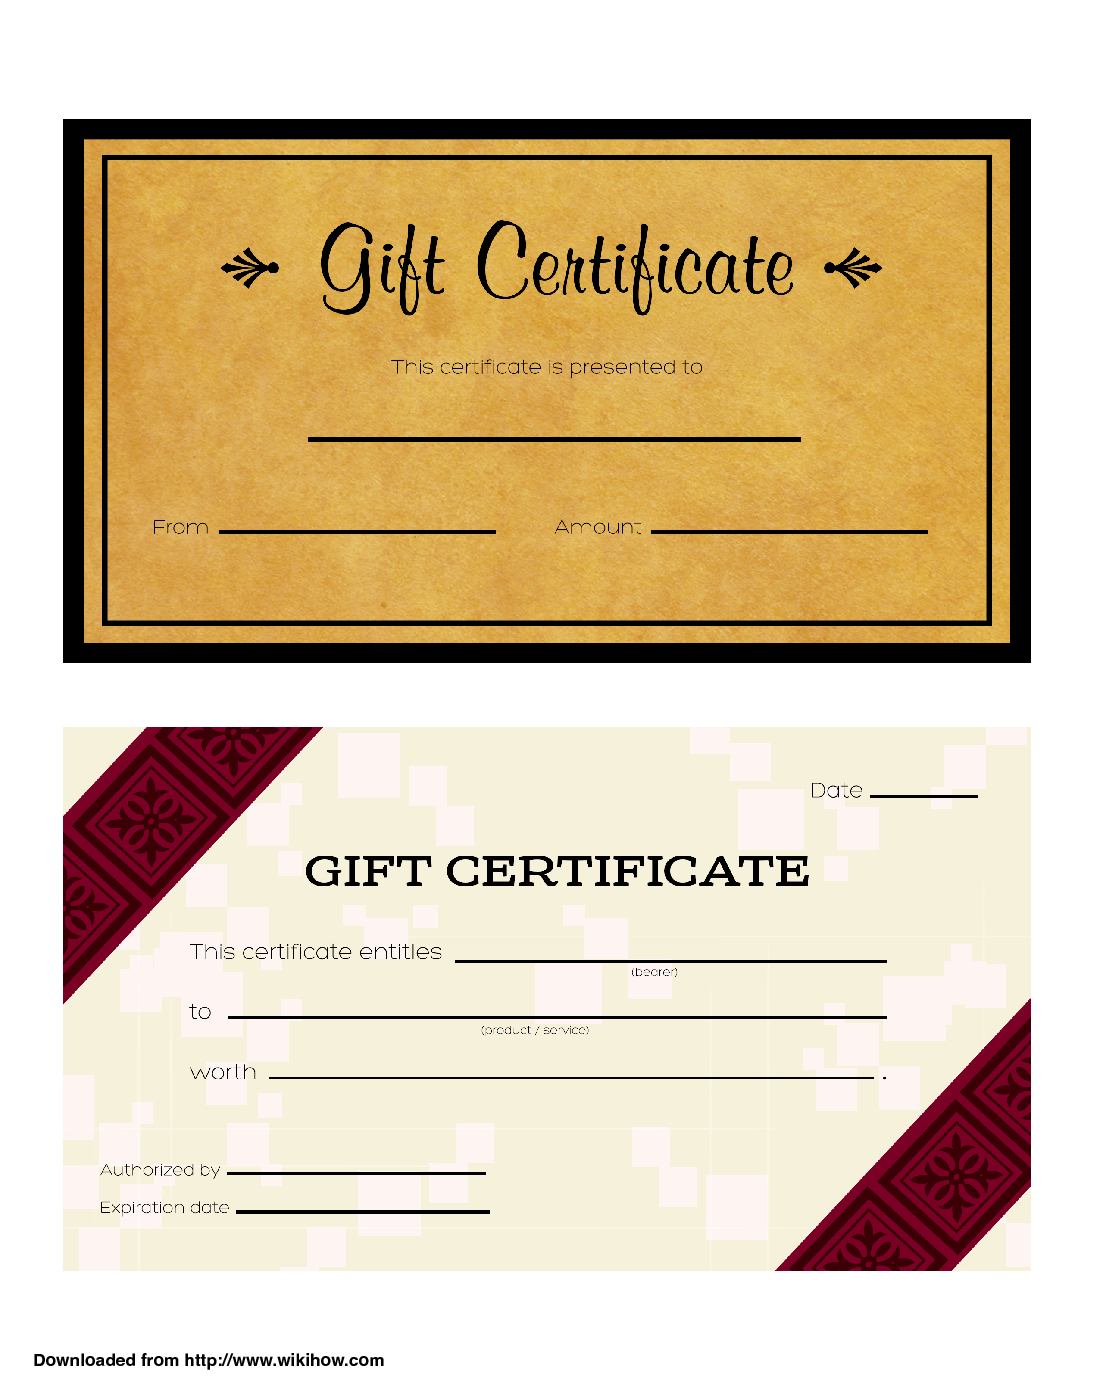 Gift Certificate Templates – Wikihow With Regard To Homemade Gift Certificate Template